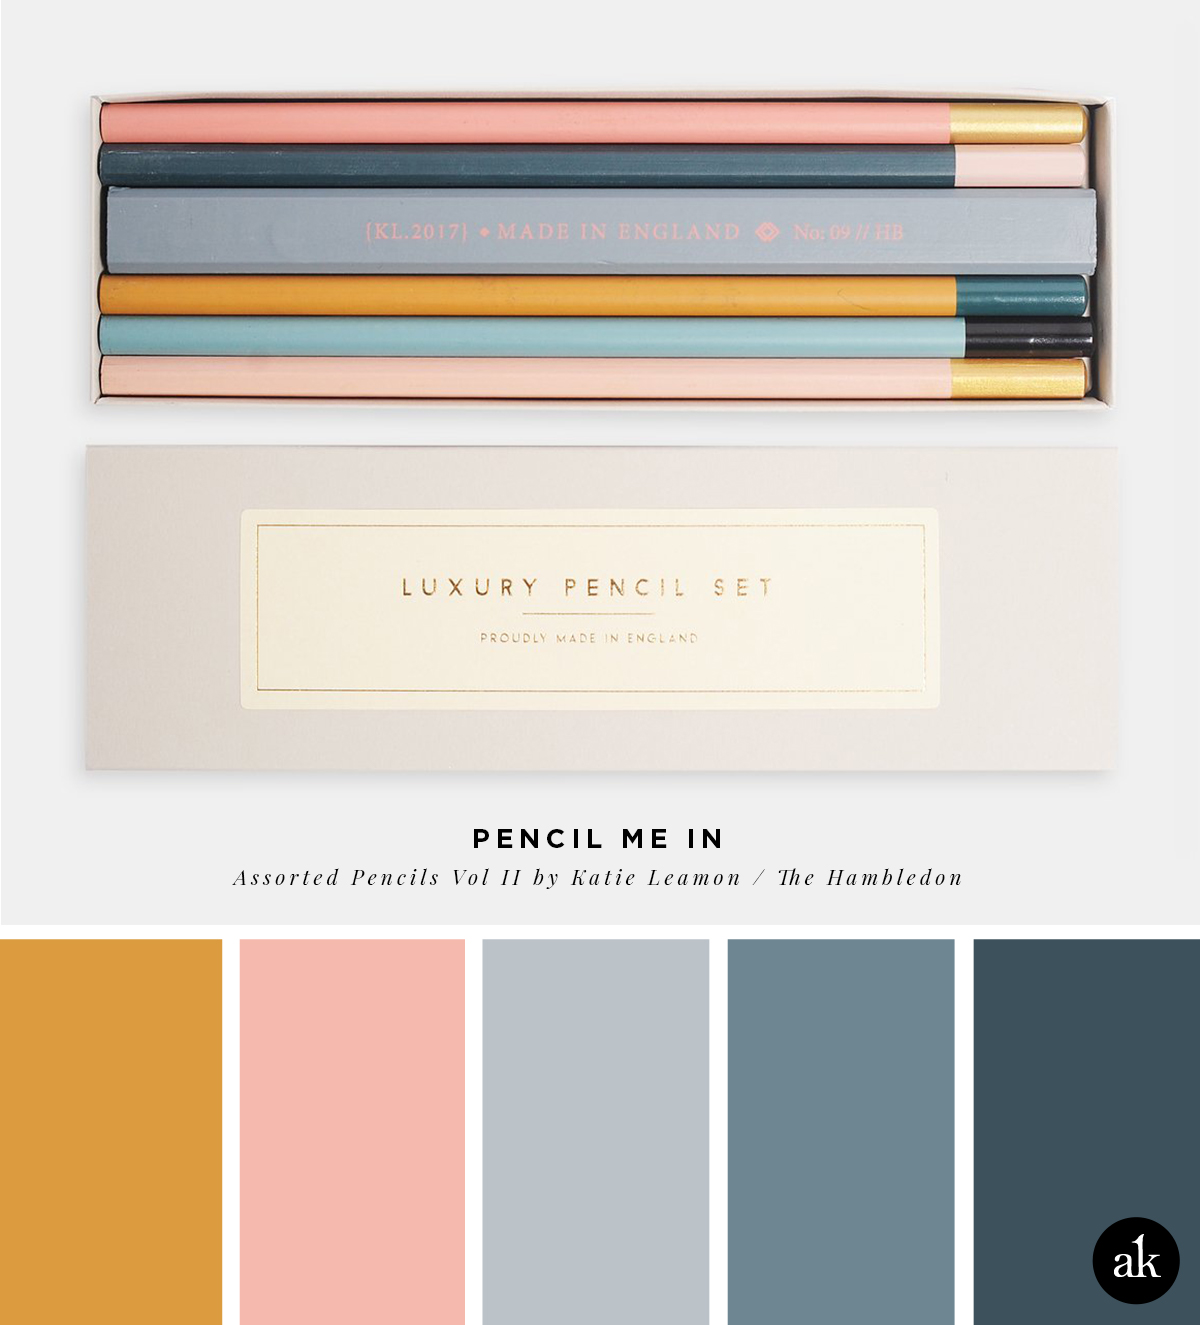 a pencil-inspired color palette // orange, blush pink, gray, blue // Assorted Pencils Vol II by Katie Leamon - The Hambledon